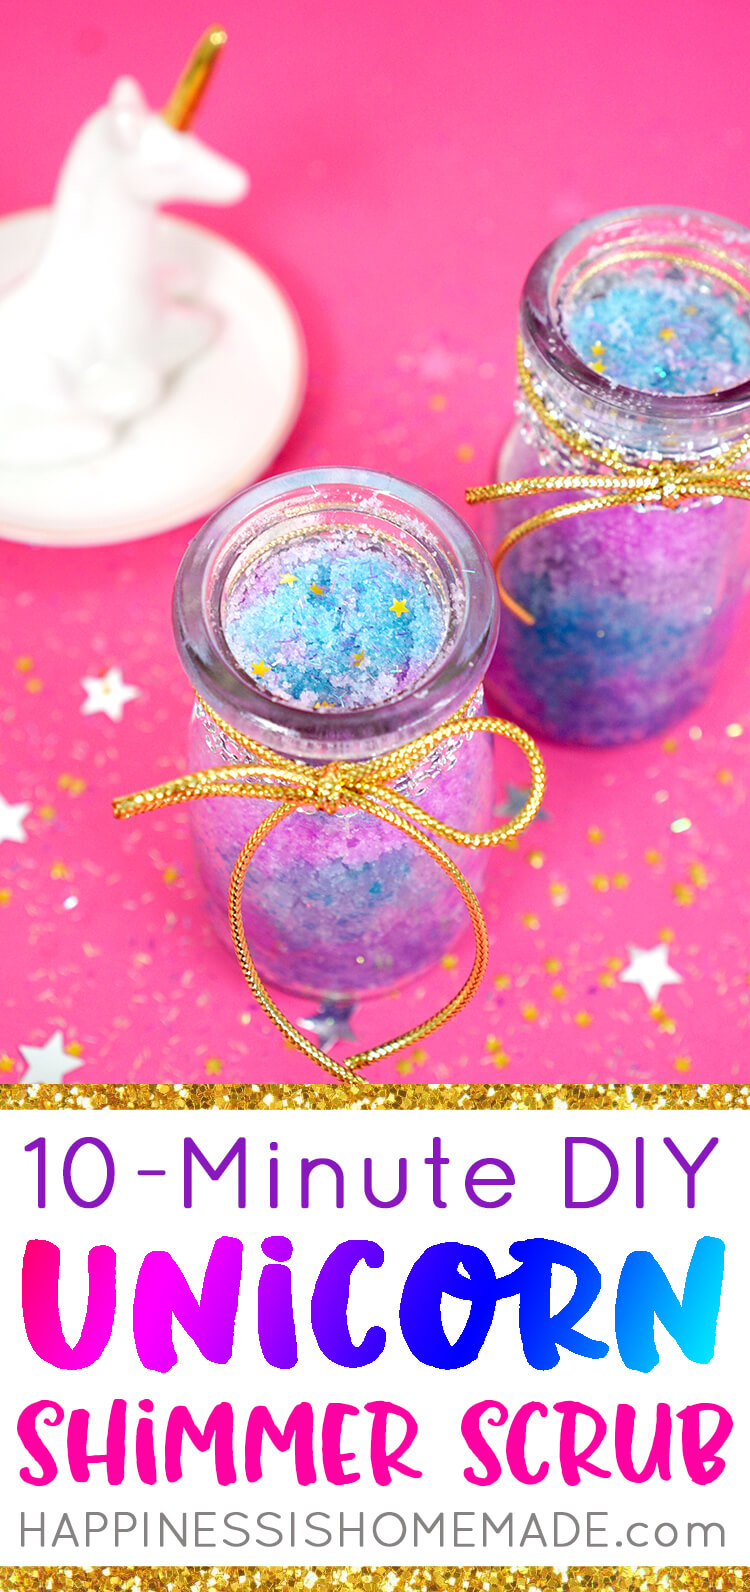 Whip up a batch of DIY Unicorn Sugar Scrub in under 10 minutes with this quick and easy sugar scrub recipe! An awesome DIY homemade gift idea for friends, family, teachers, and more!